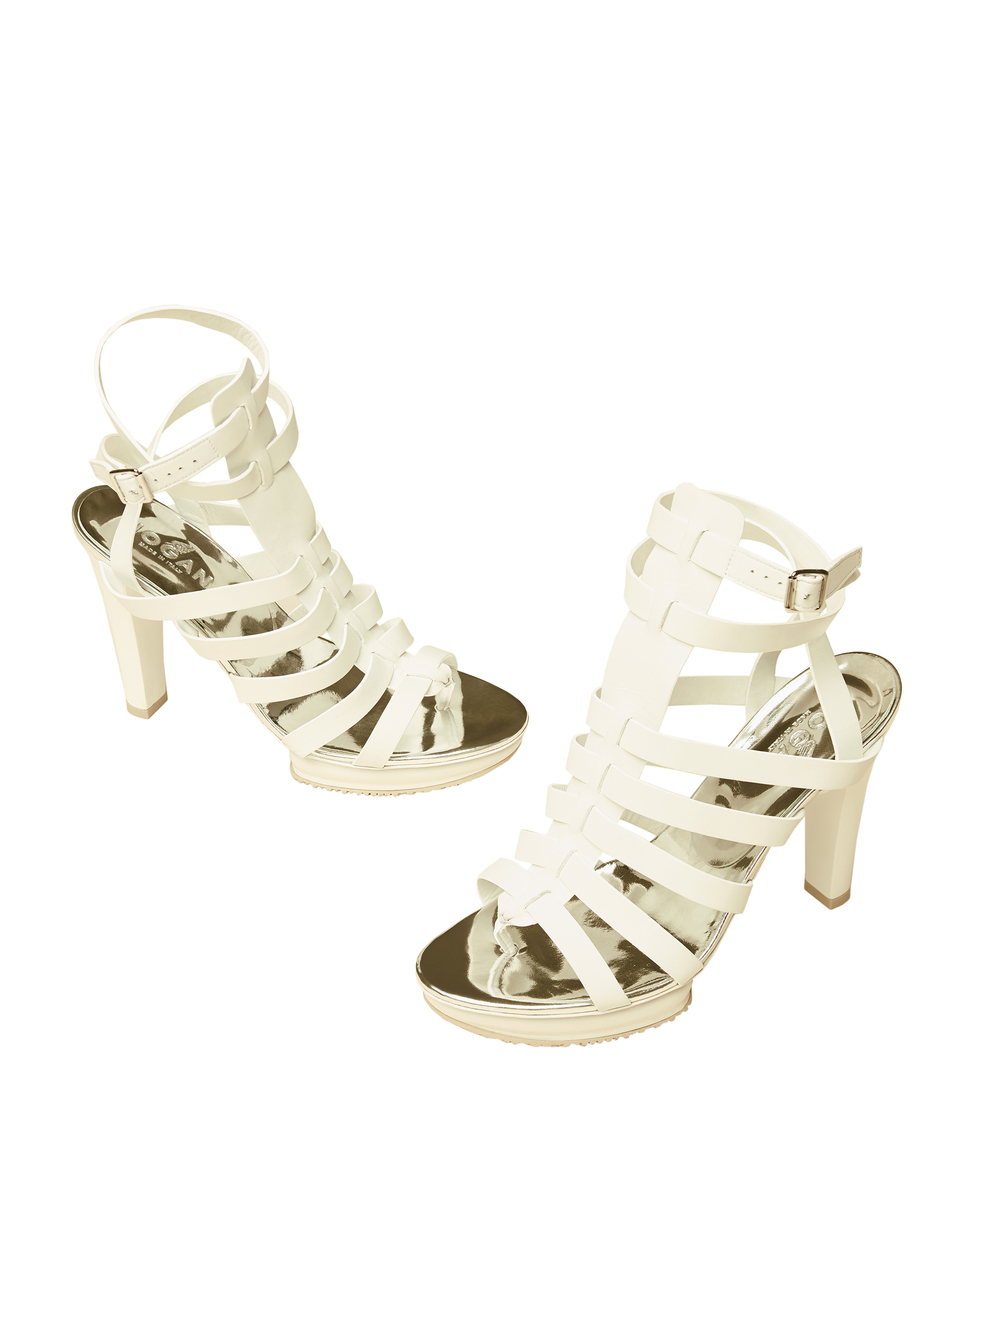 10-gladiator sandals in white leather.jpg